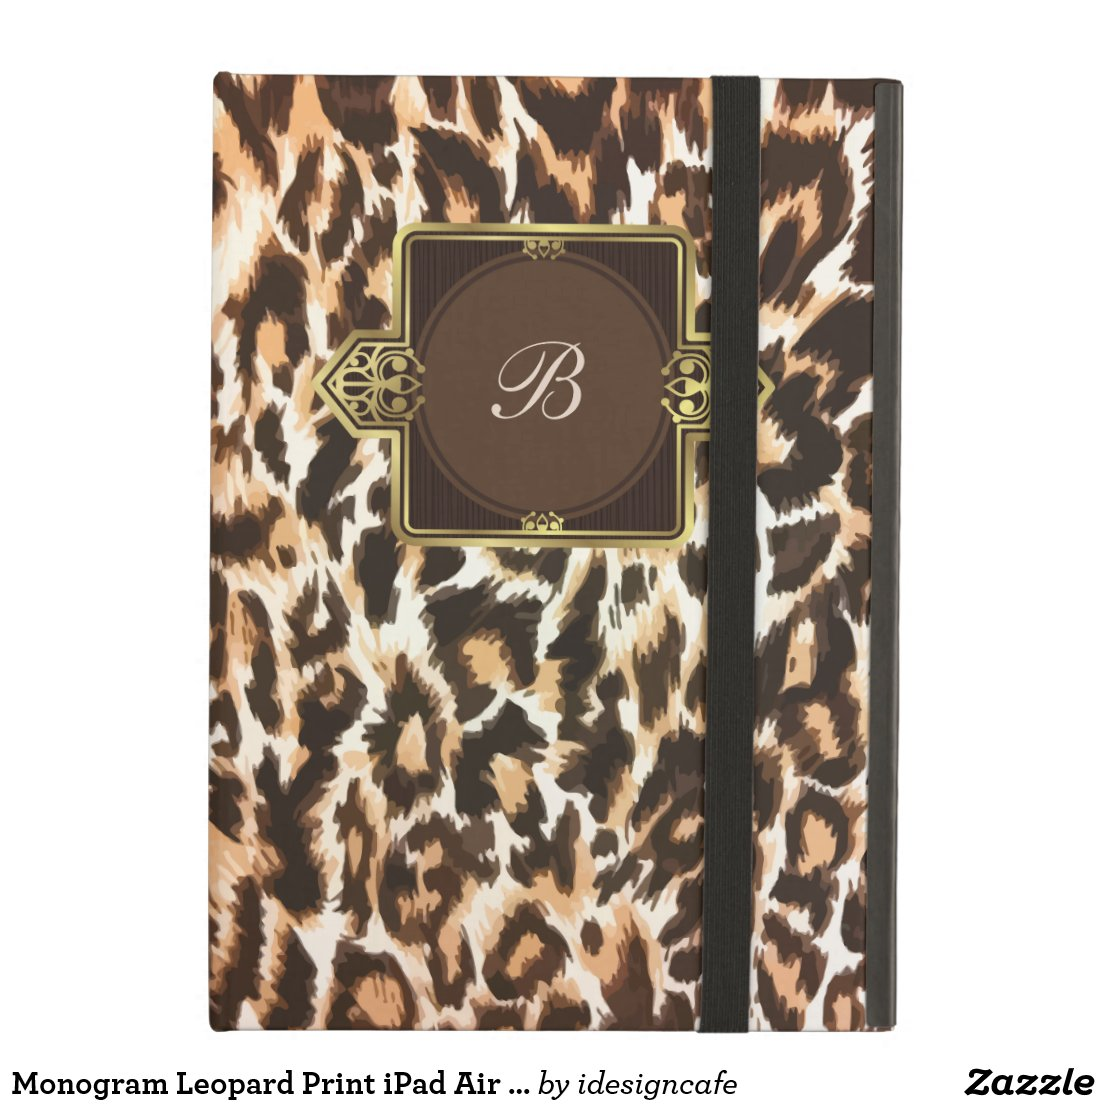 Monogram Leopard Print iPad Air Case